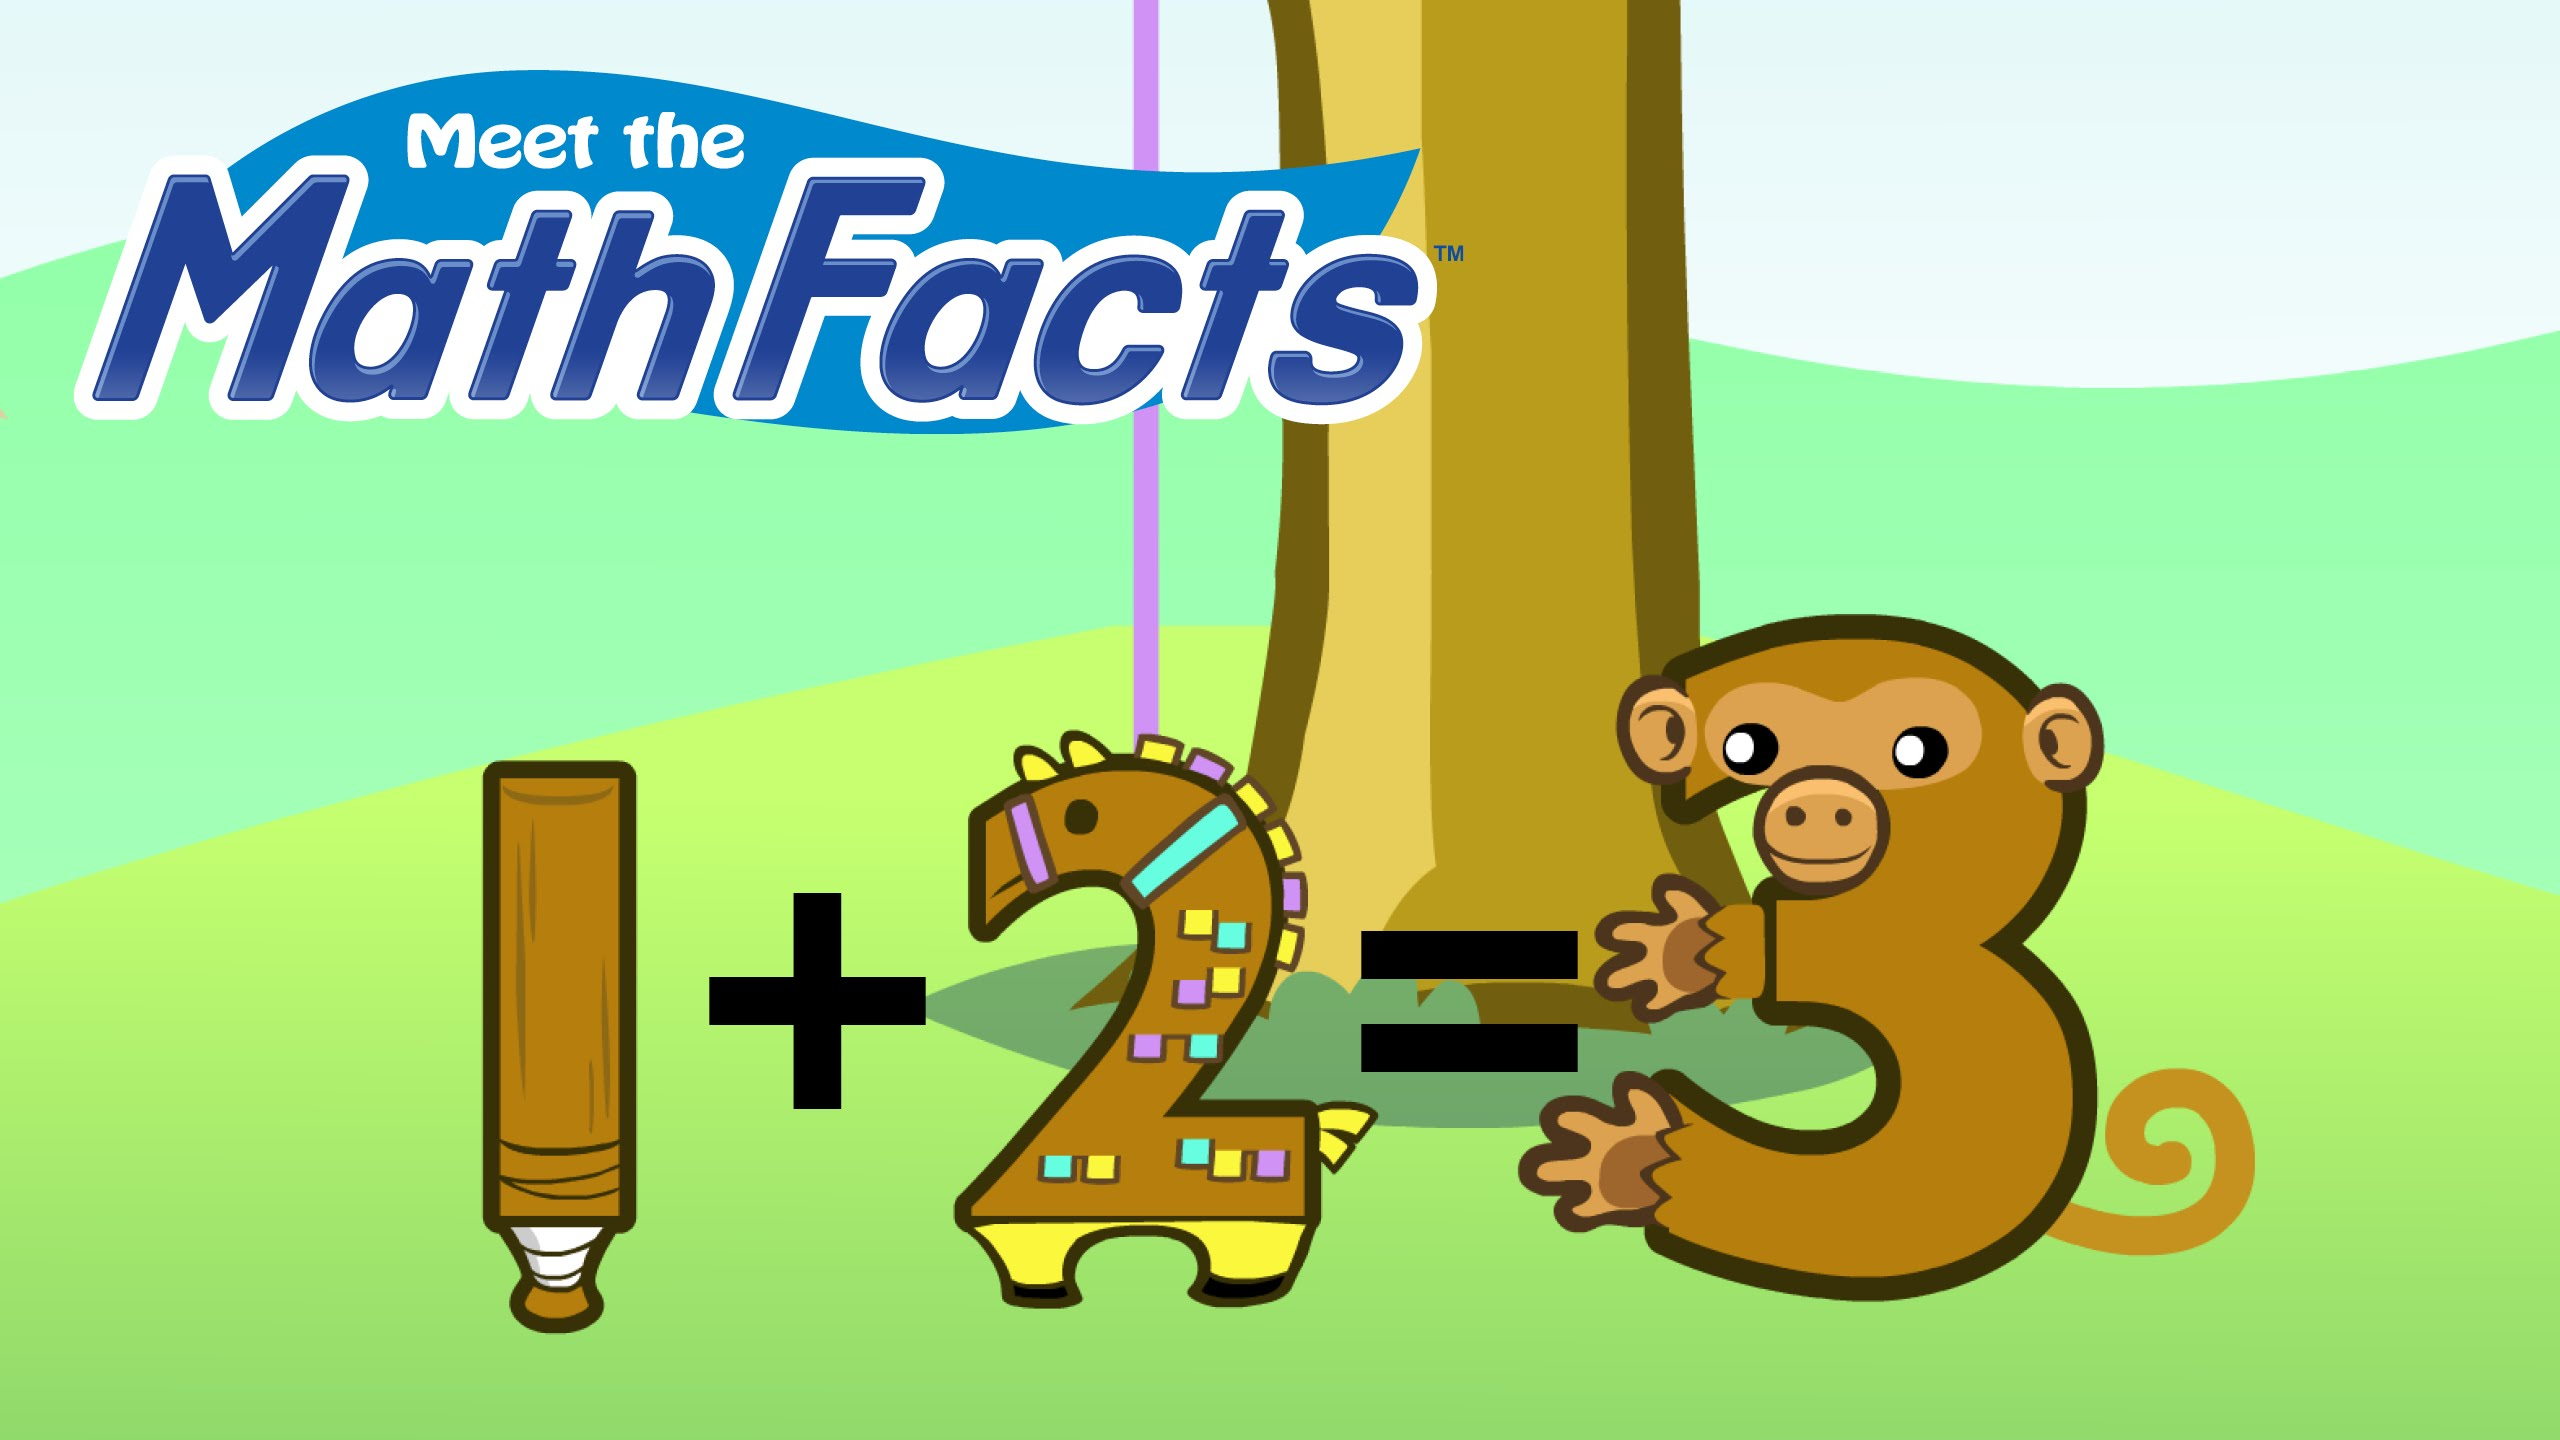 Addition clipart easy math. Meet the facts level